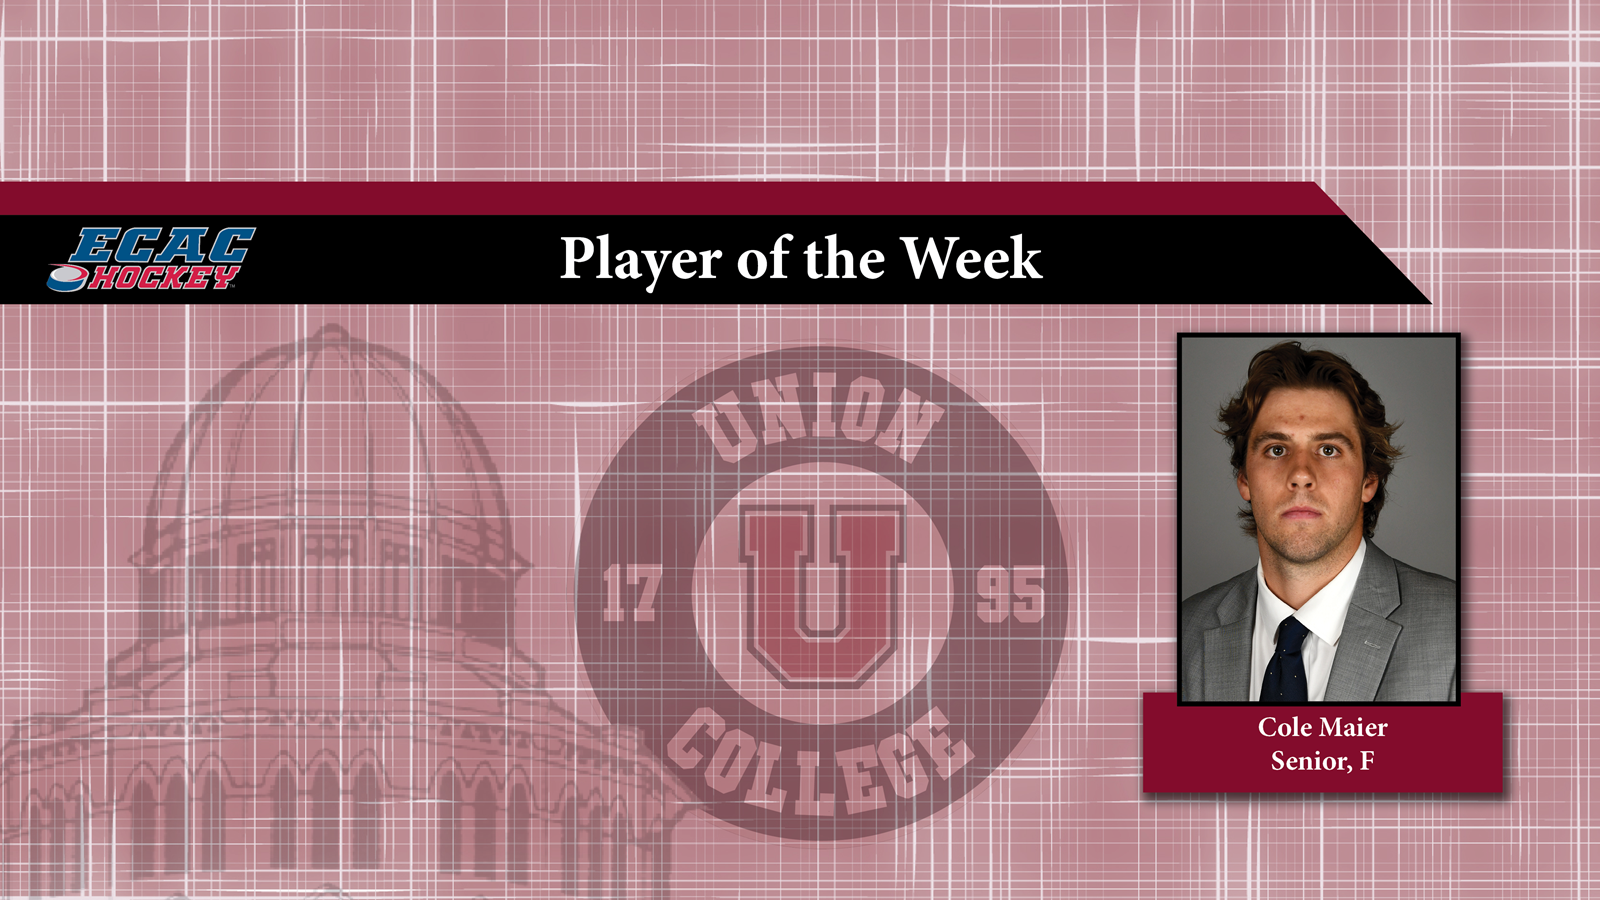 Maier named Player of the Week